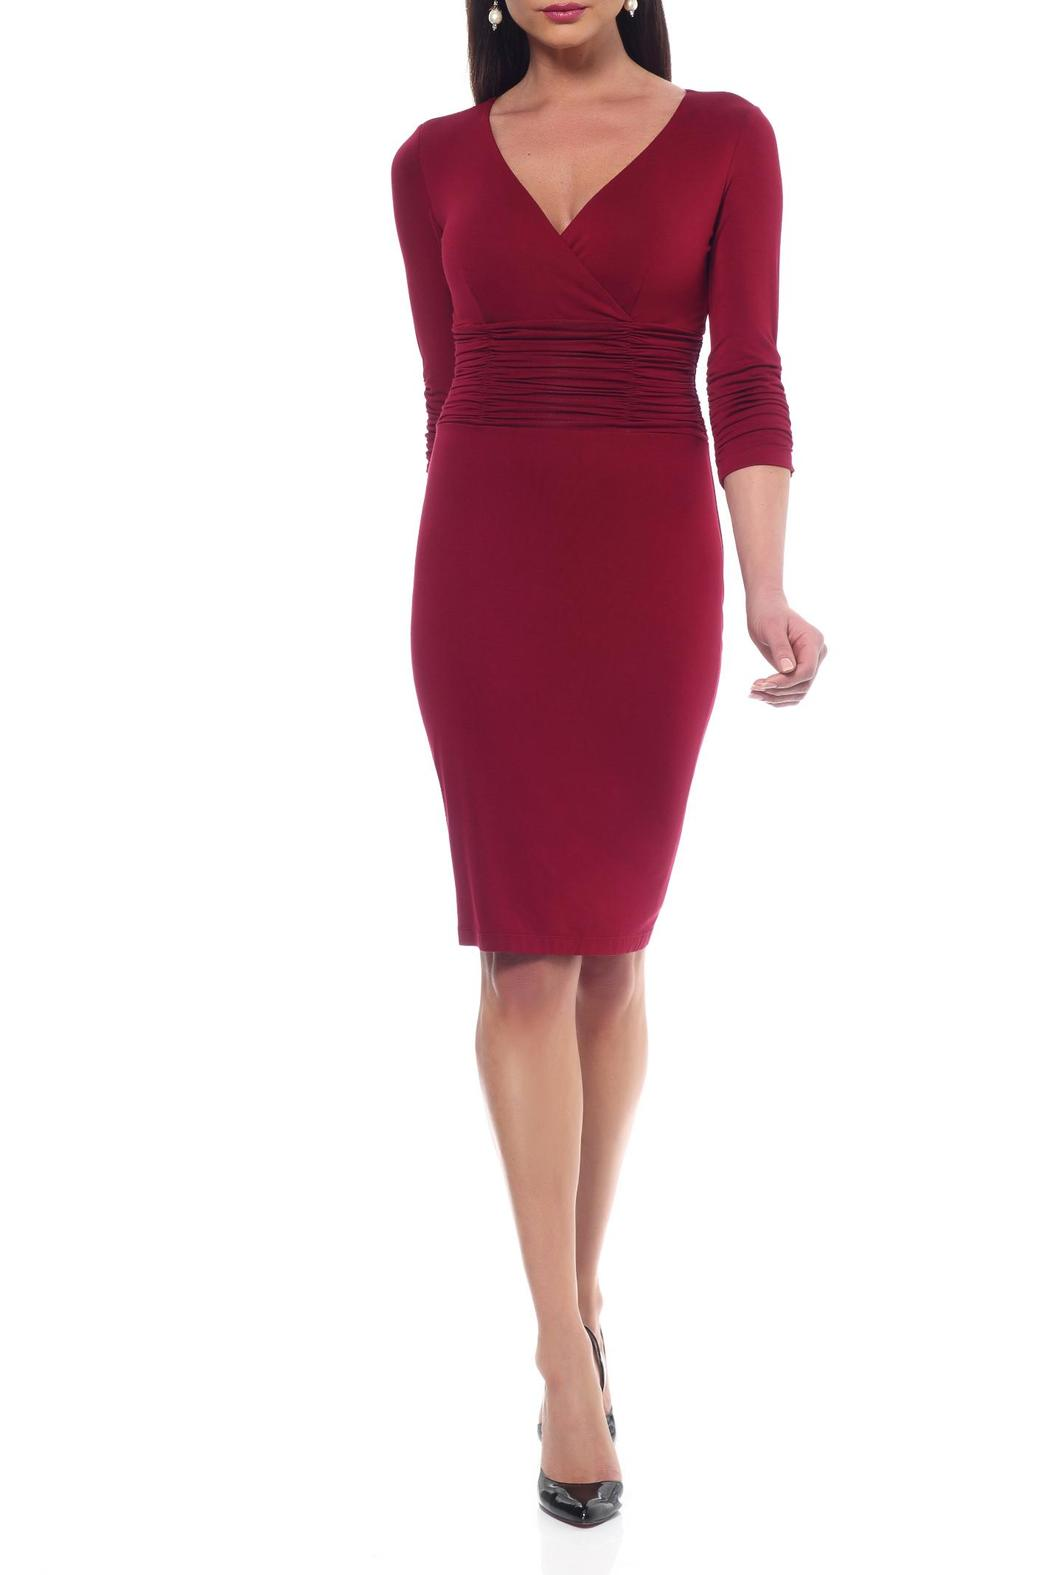 Nue by Shani Knit Sheath Dress from Montana by Olive + Iron ...